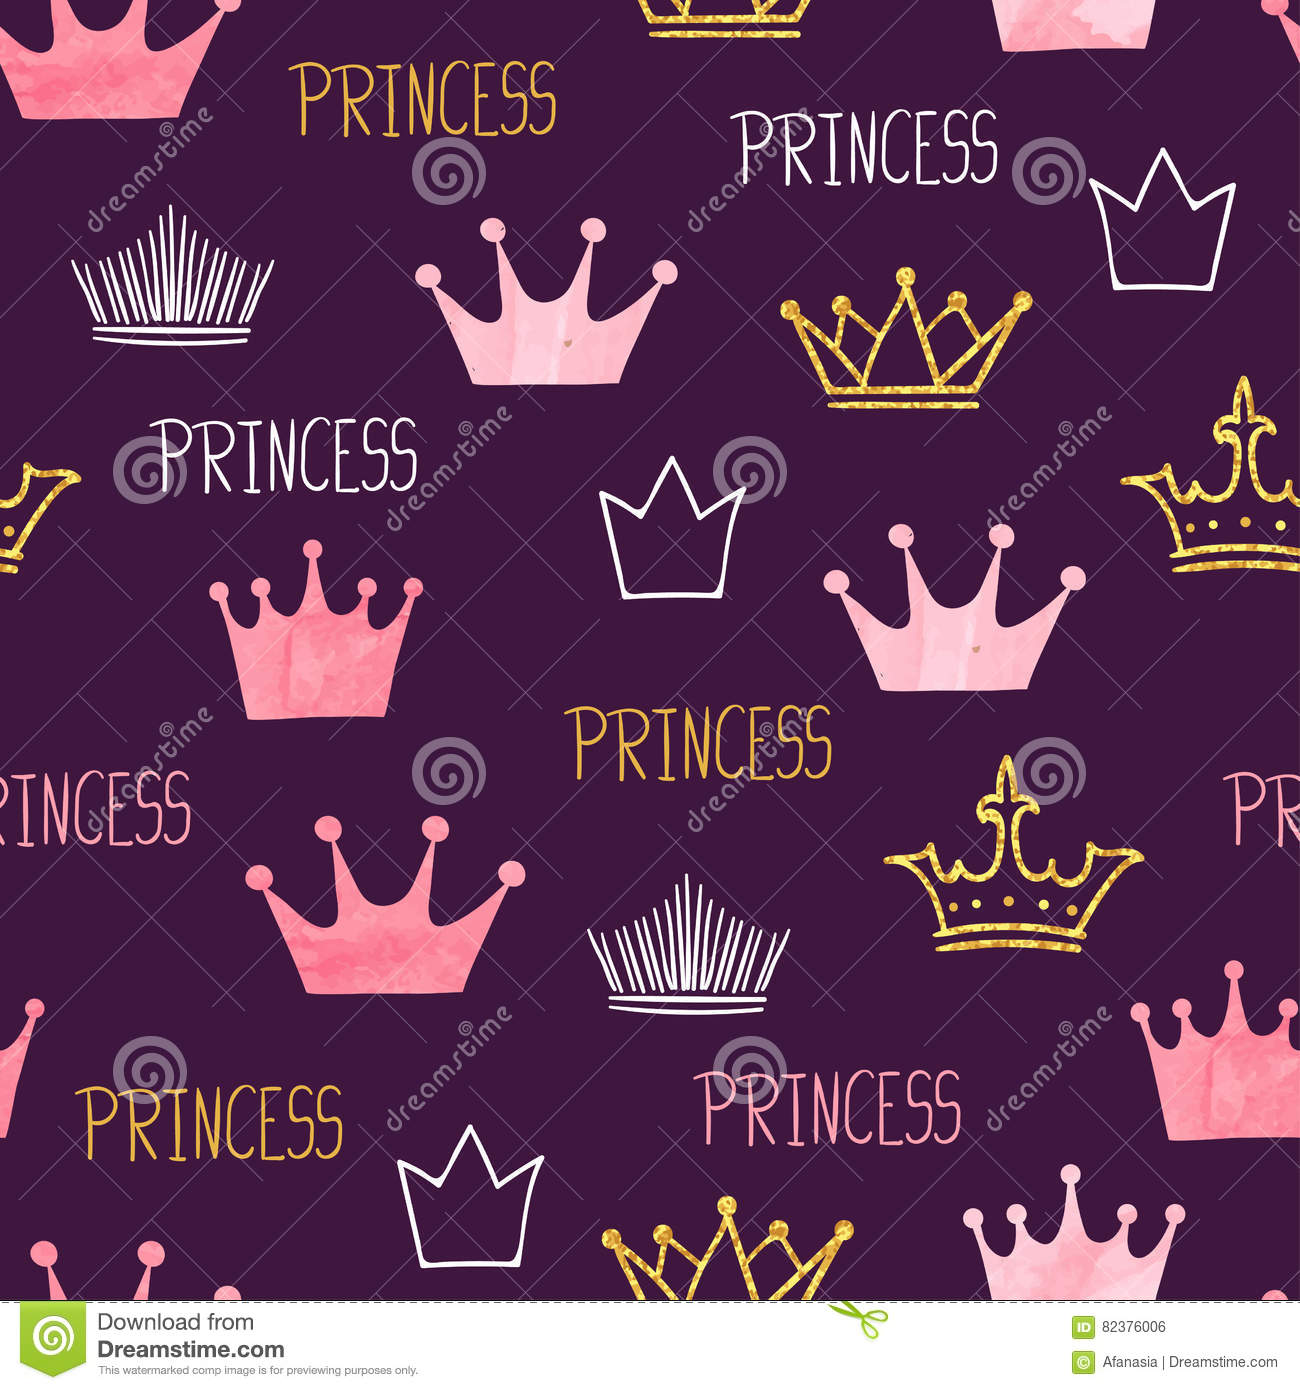 Little princess seamless pattern with watercolor and glittering crowns.